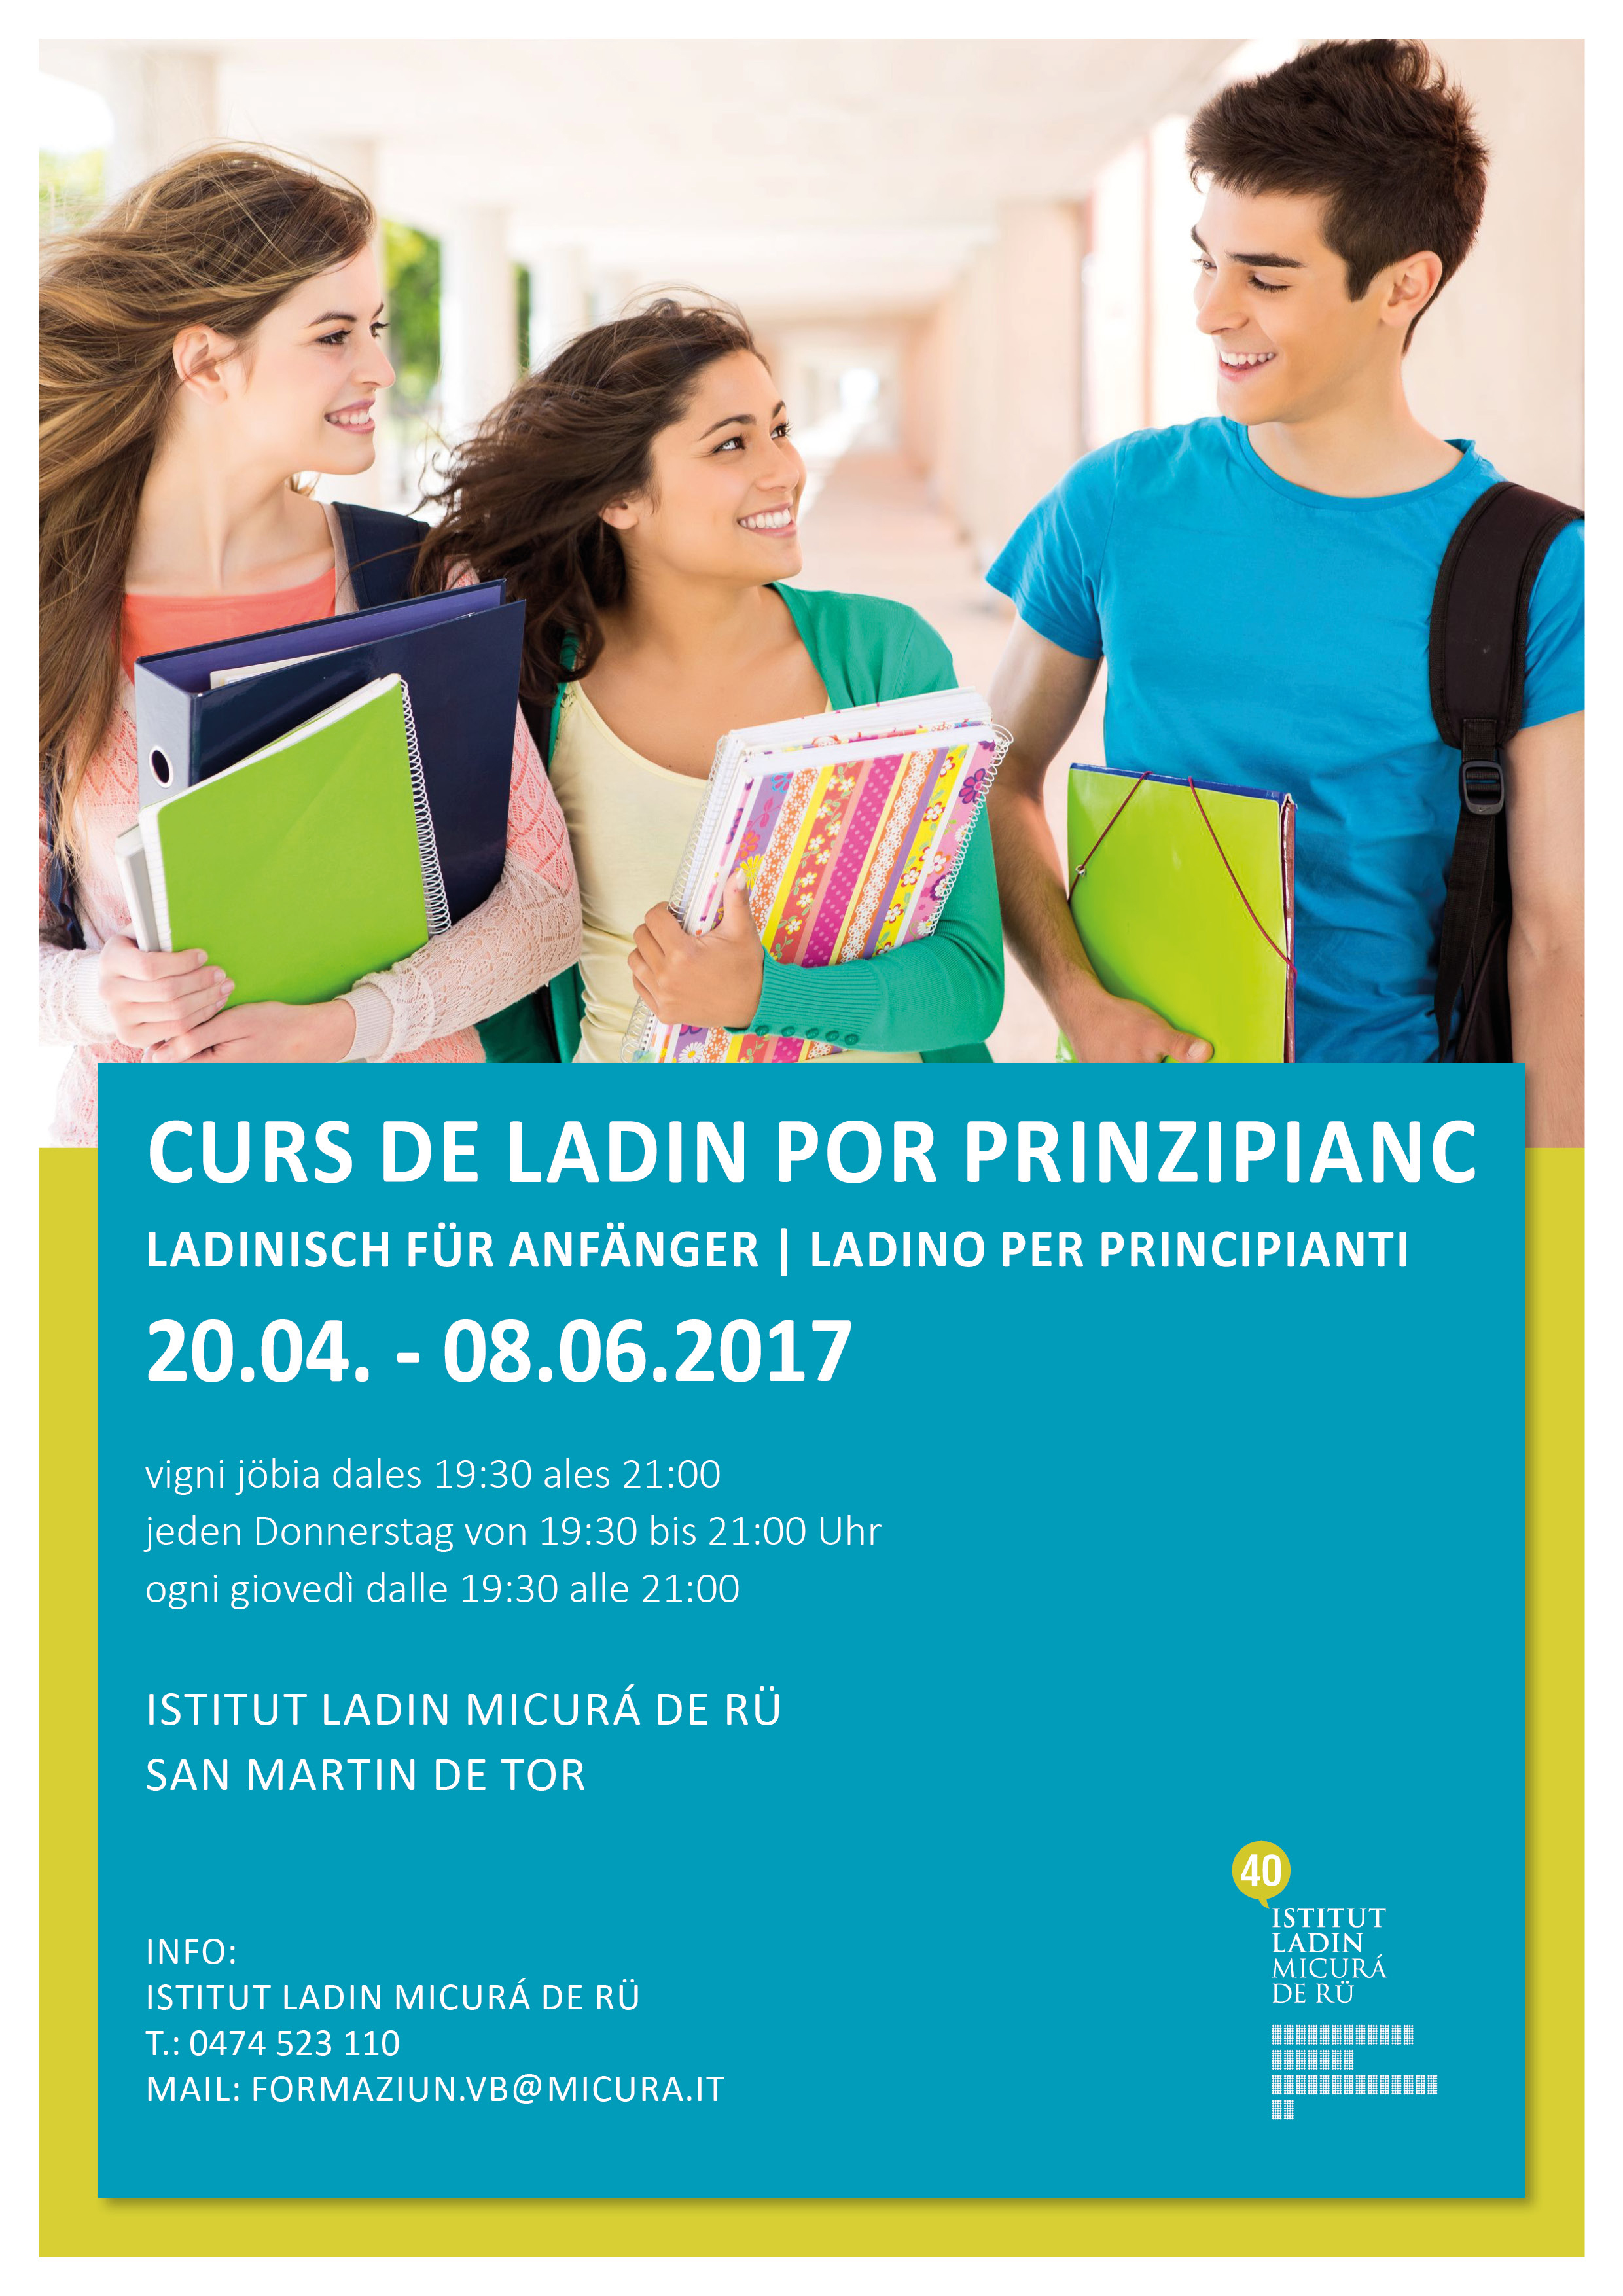 Curs ladin 2017 web